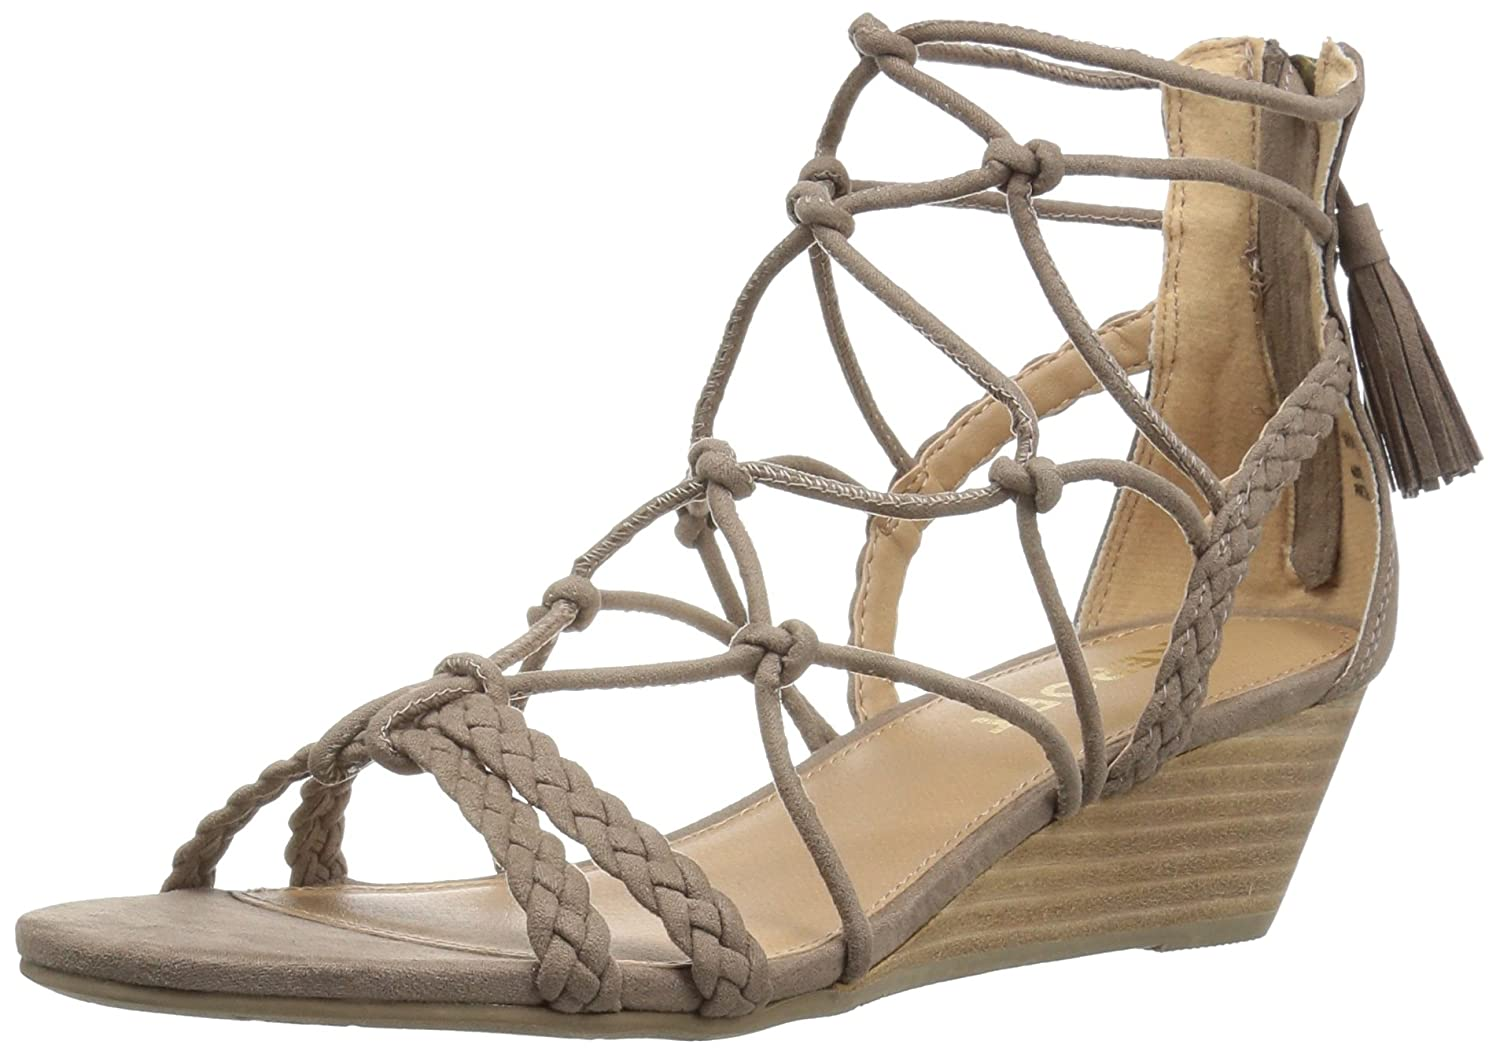 Report Women's Minnie Wedge Sandal B01LRIOHAW 9 B(M) US|Taupe